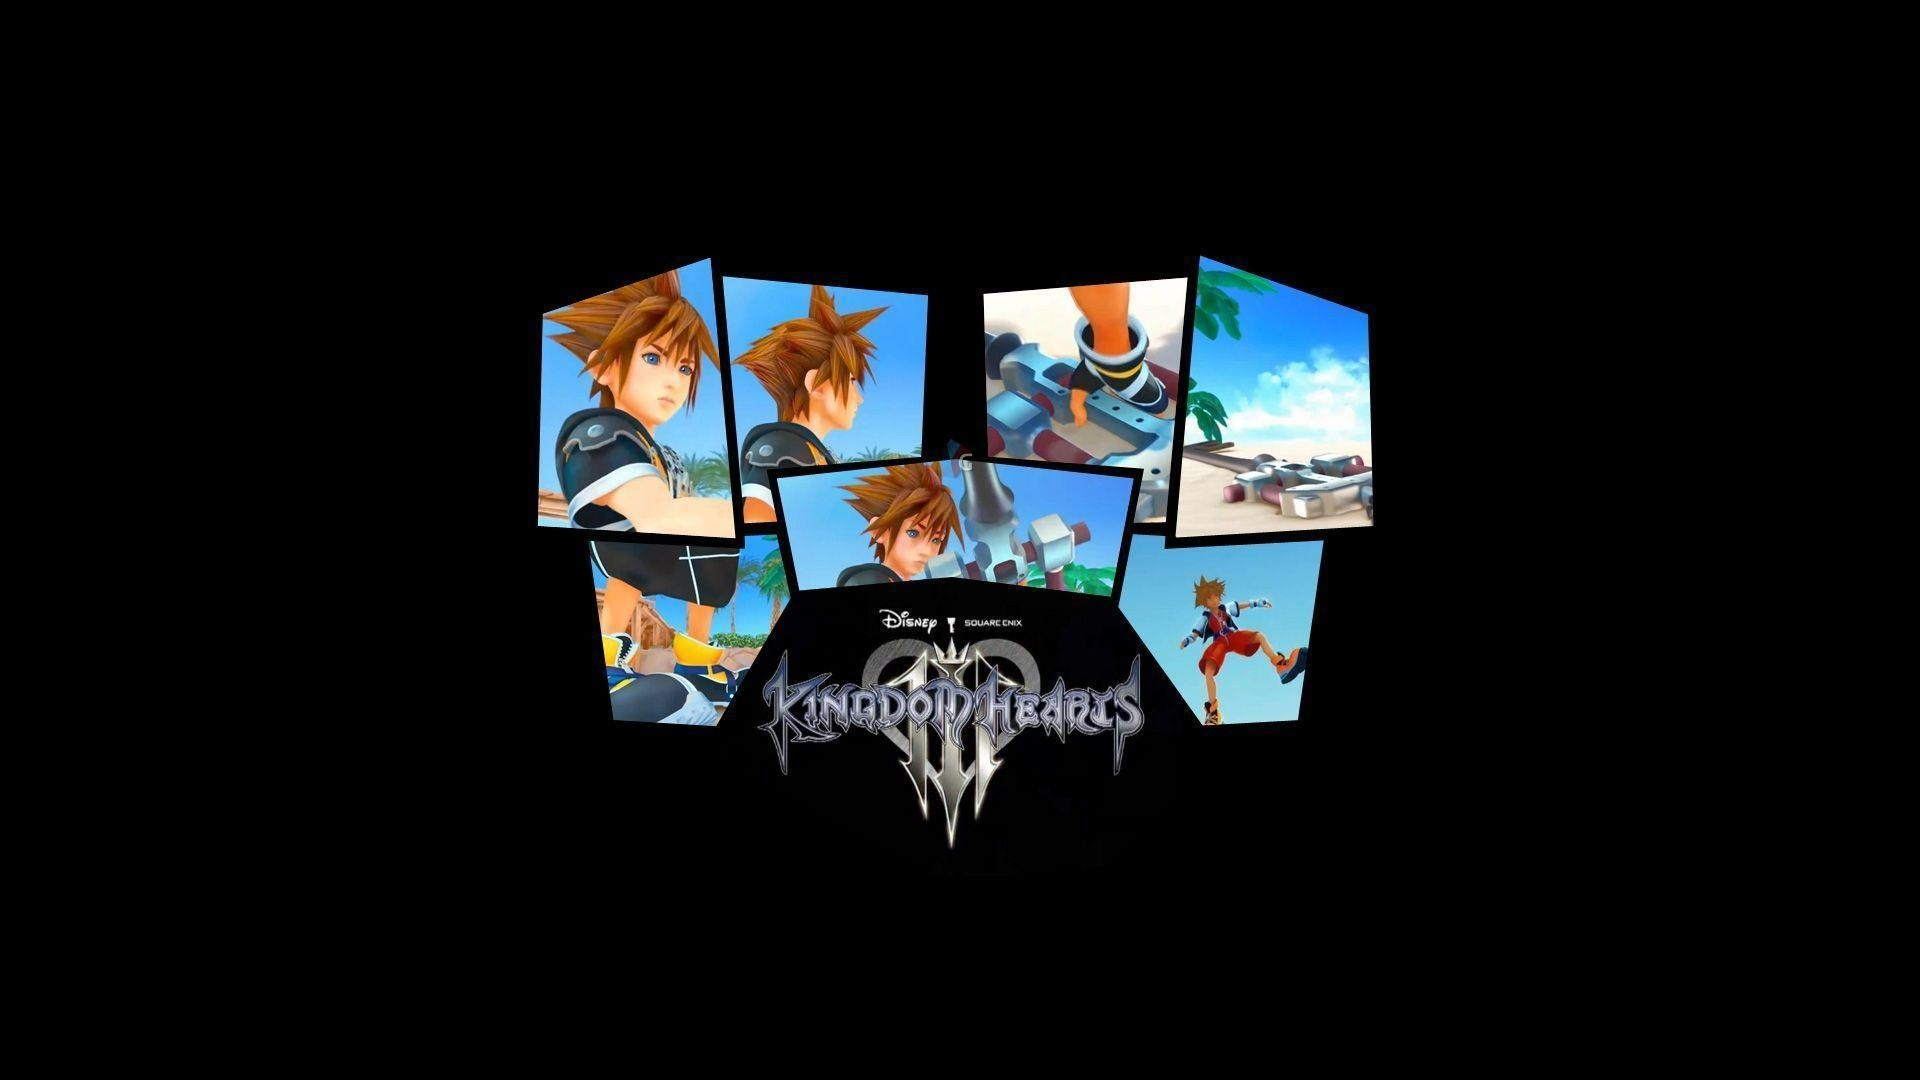 kingdom hearts 3 wallpapers - wallpaper cave